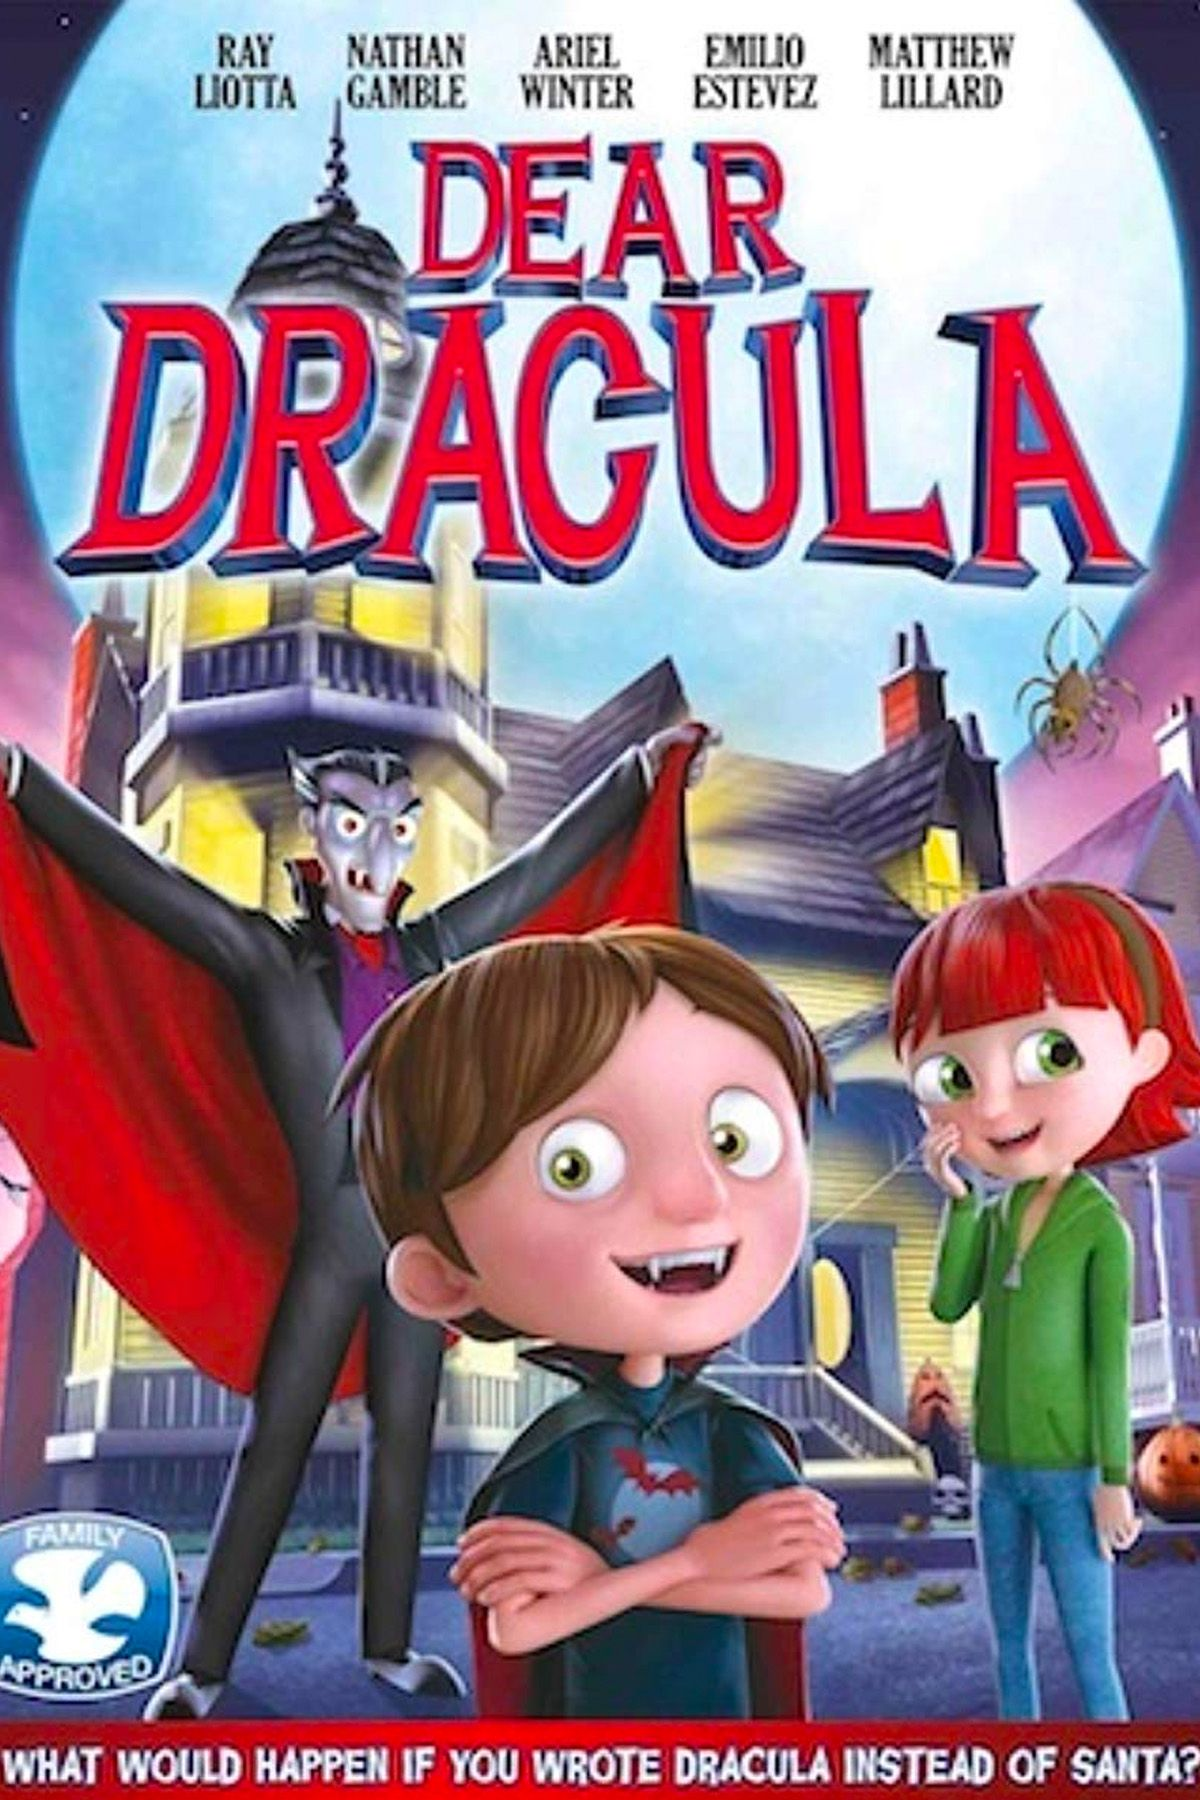 47 Best Halloween Movies for Kids - Family Halloween Movies